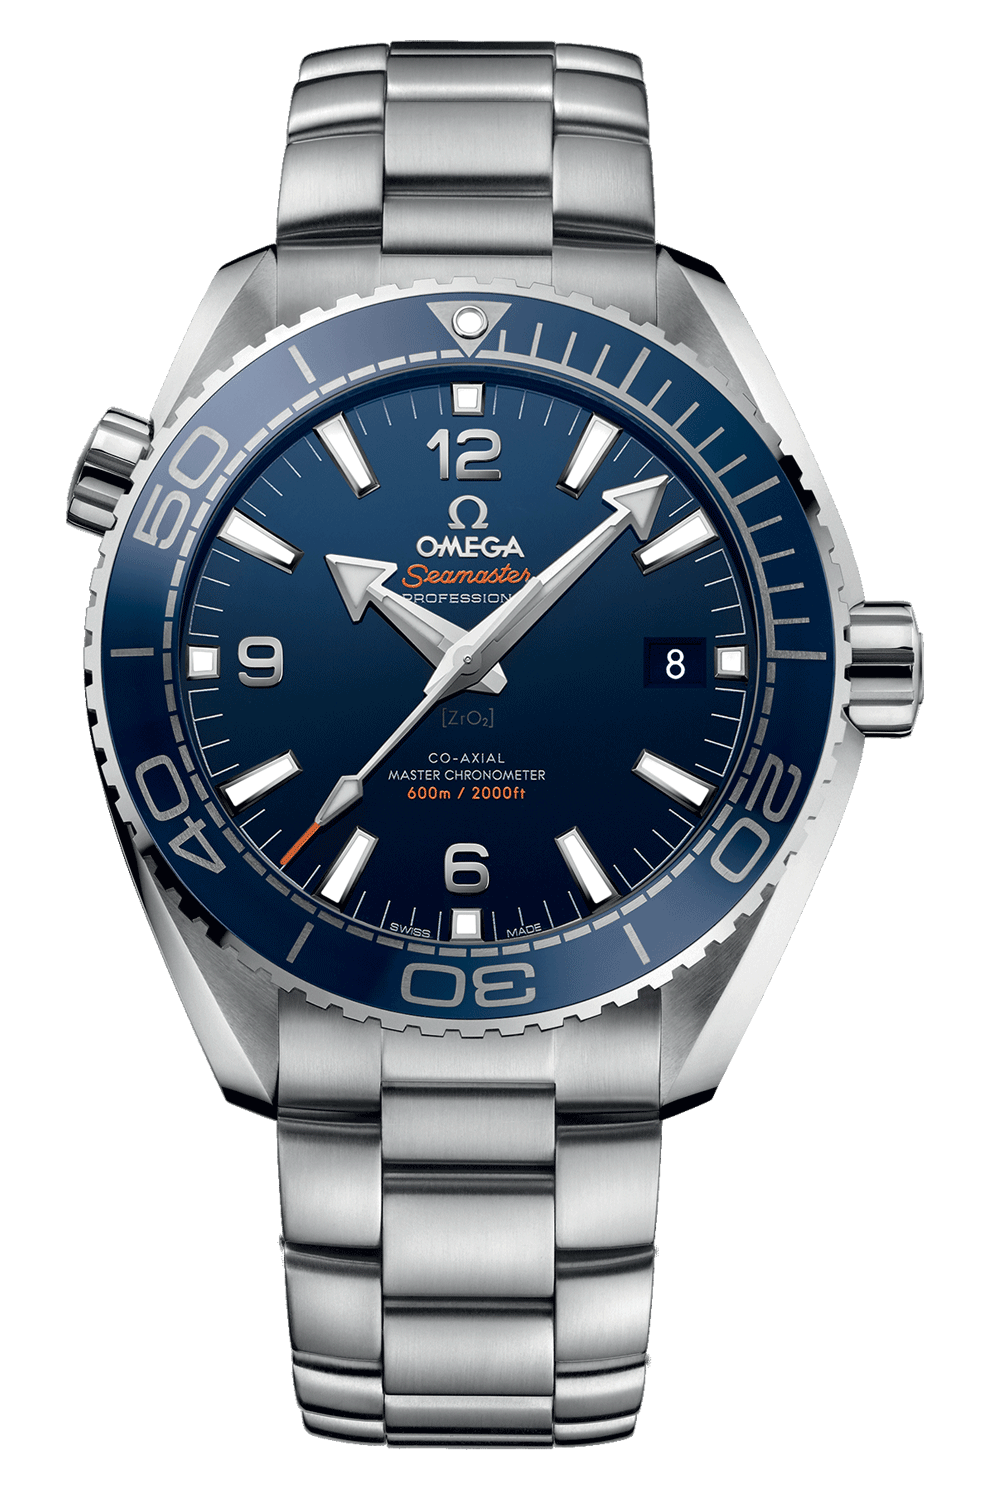 OMEGA Seamaster Planet Ocean 600m Omega Co-Axial Master Chronometer 43.5mm 21530442103001